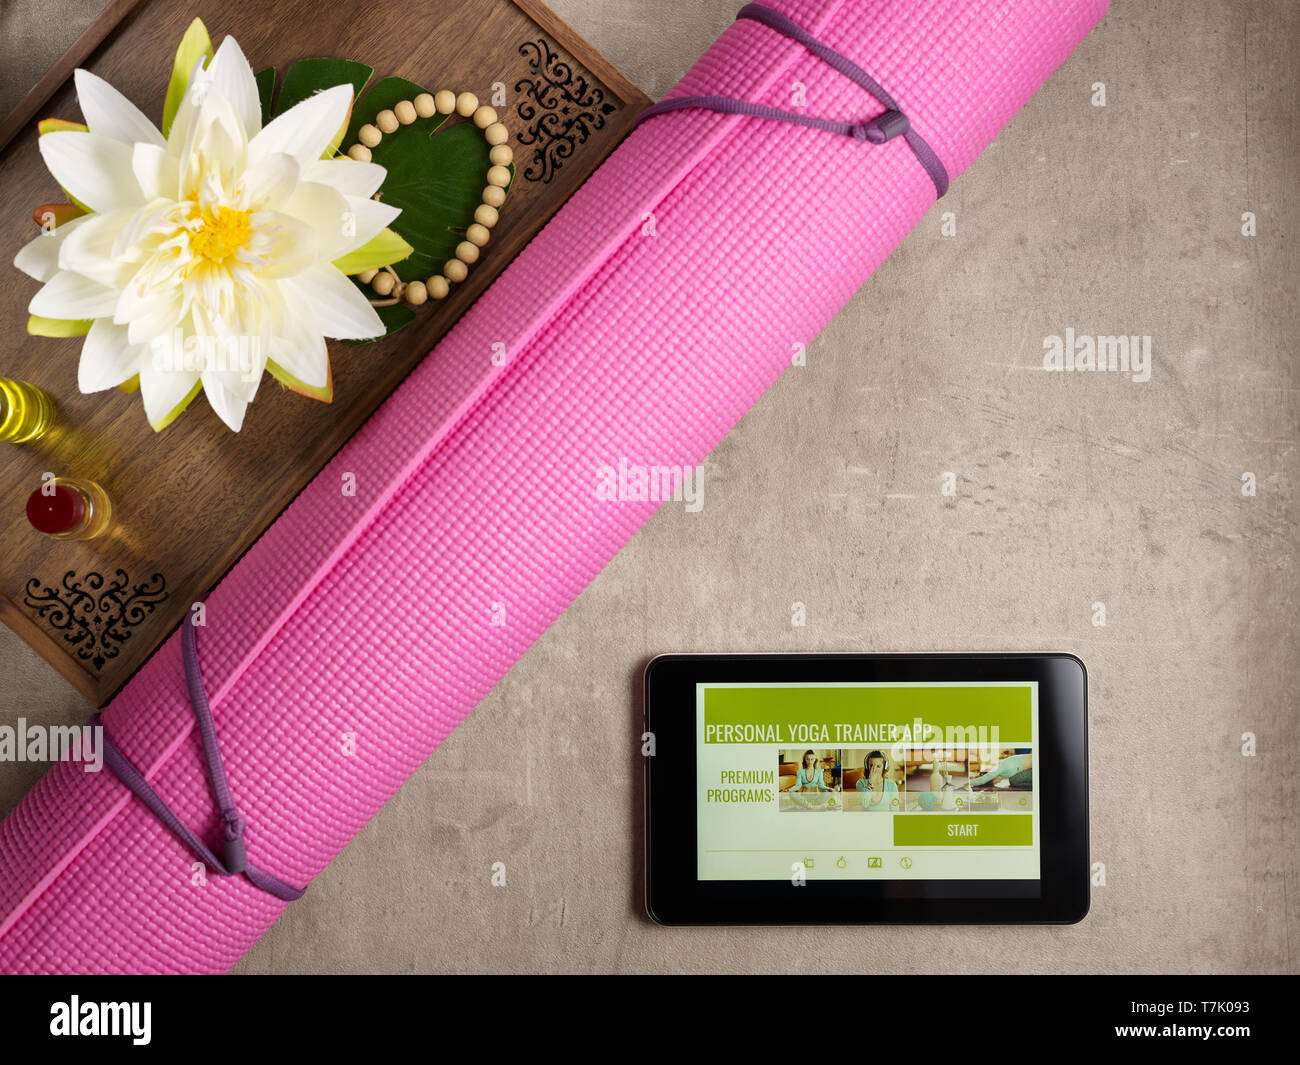 Closeup on tray with fragrant stuff for aroma yoga, beads, yoga mat and tablet PC with personal yoga trainer app laying on the floor. - Stock Image